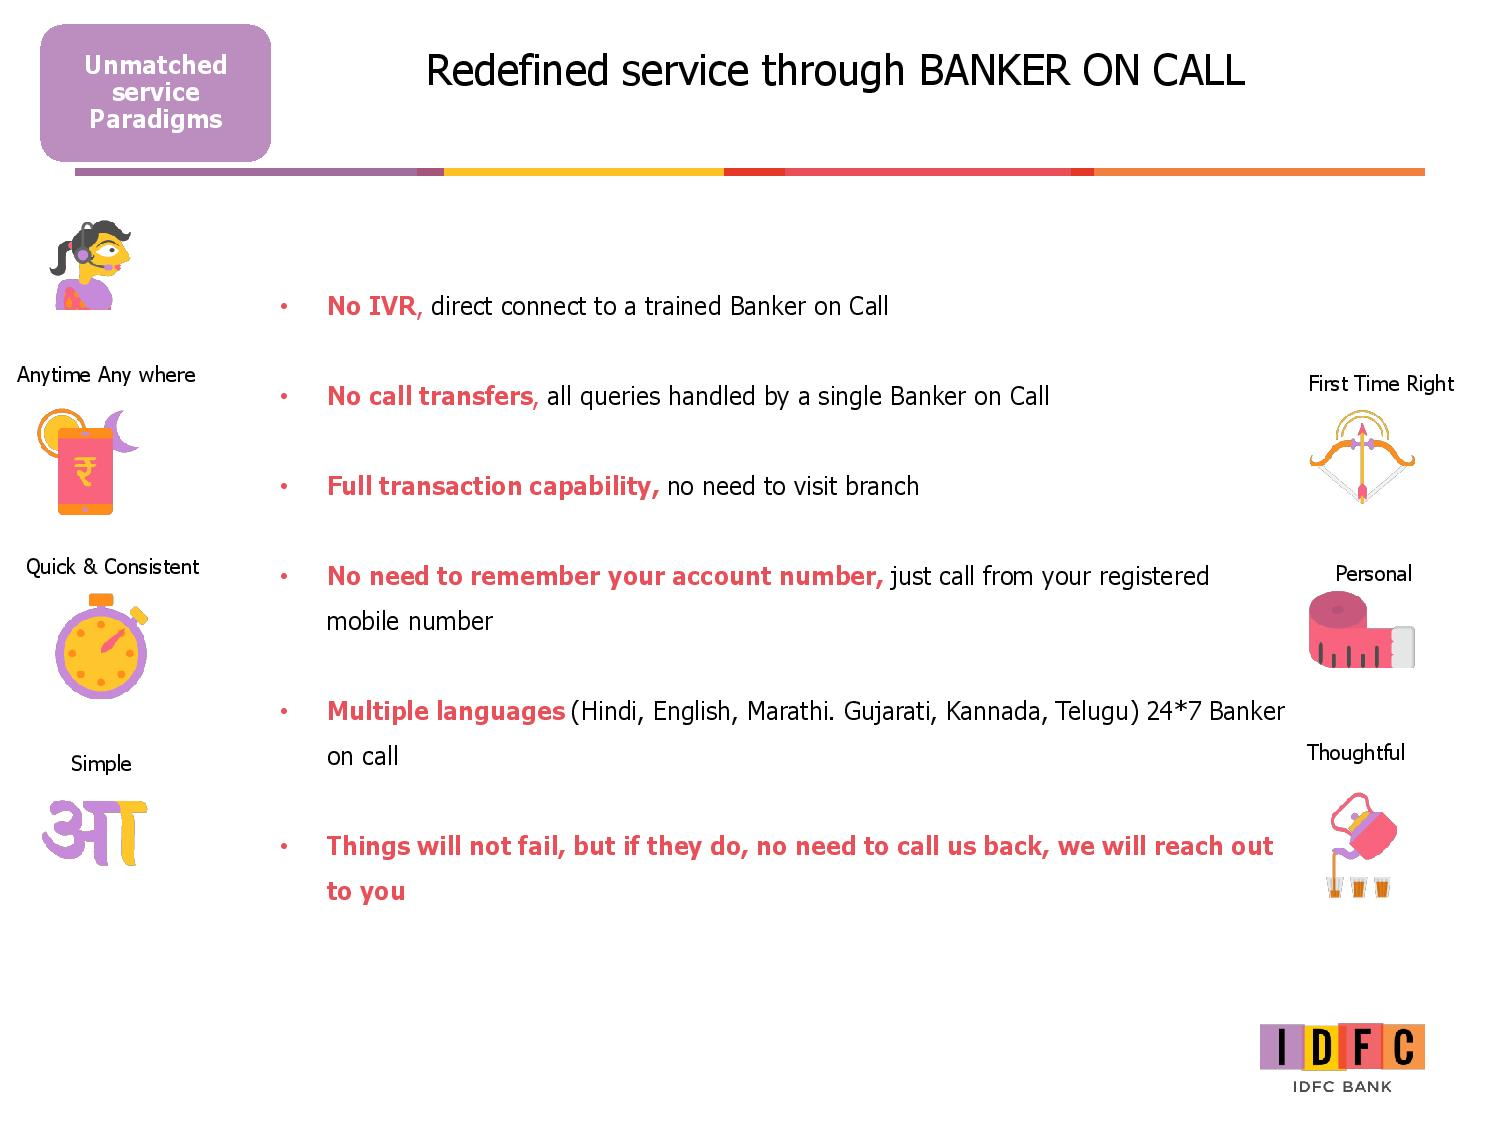 Redifined Service Through Banker